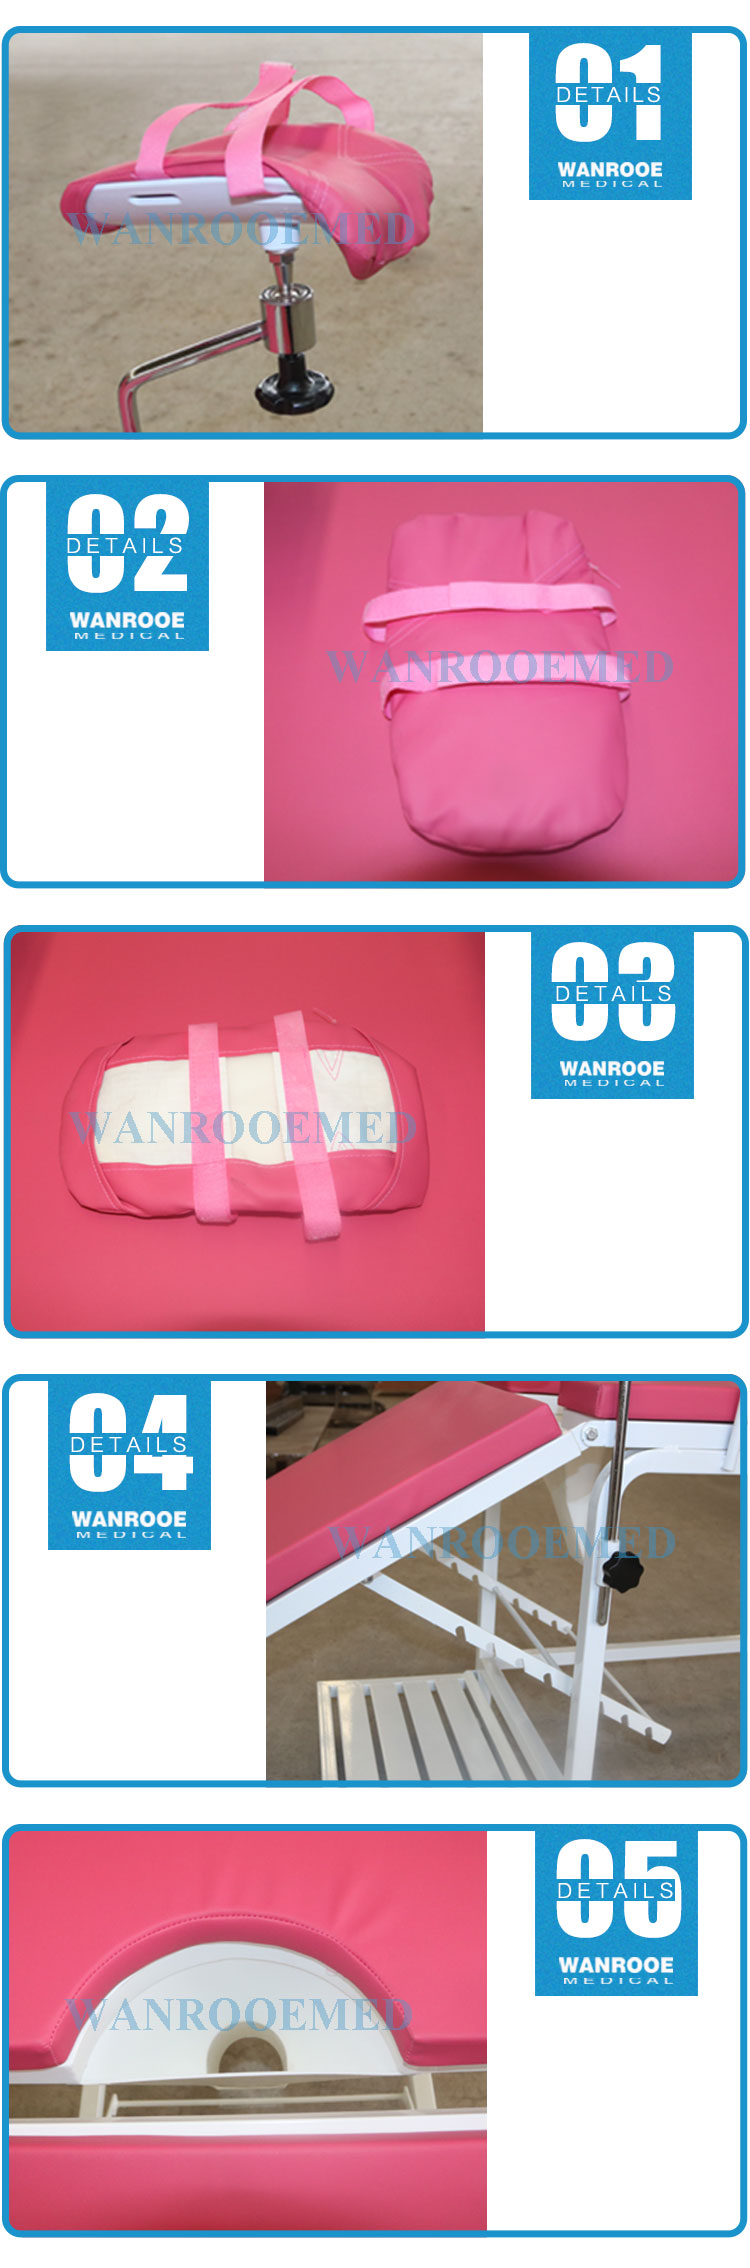 Obstetric Delivery Table, Stainless Steel Delivery, Delivery Table